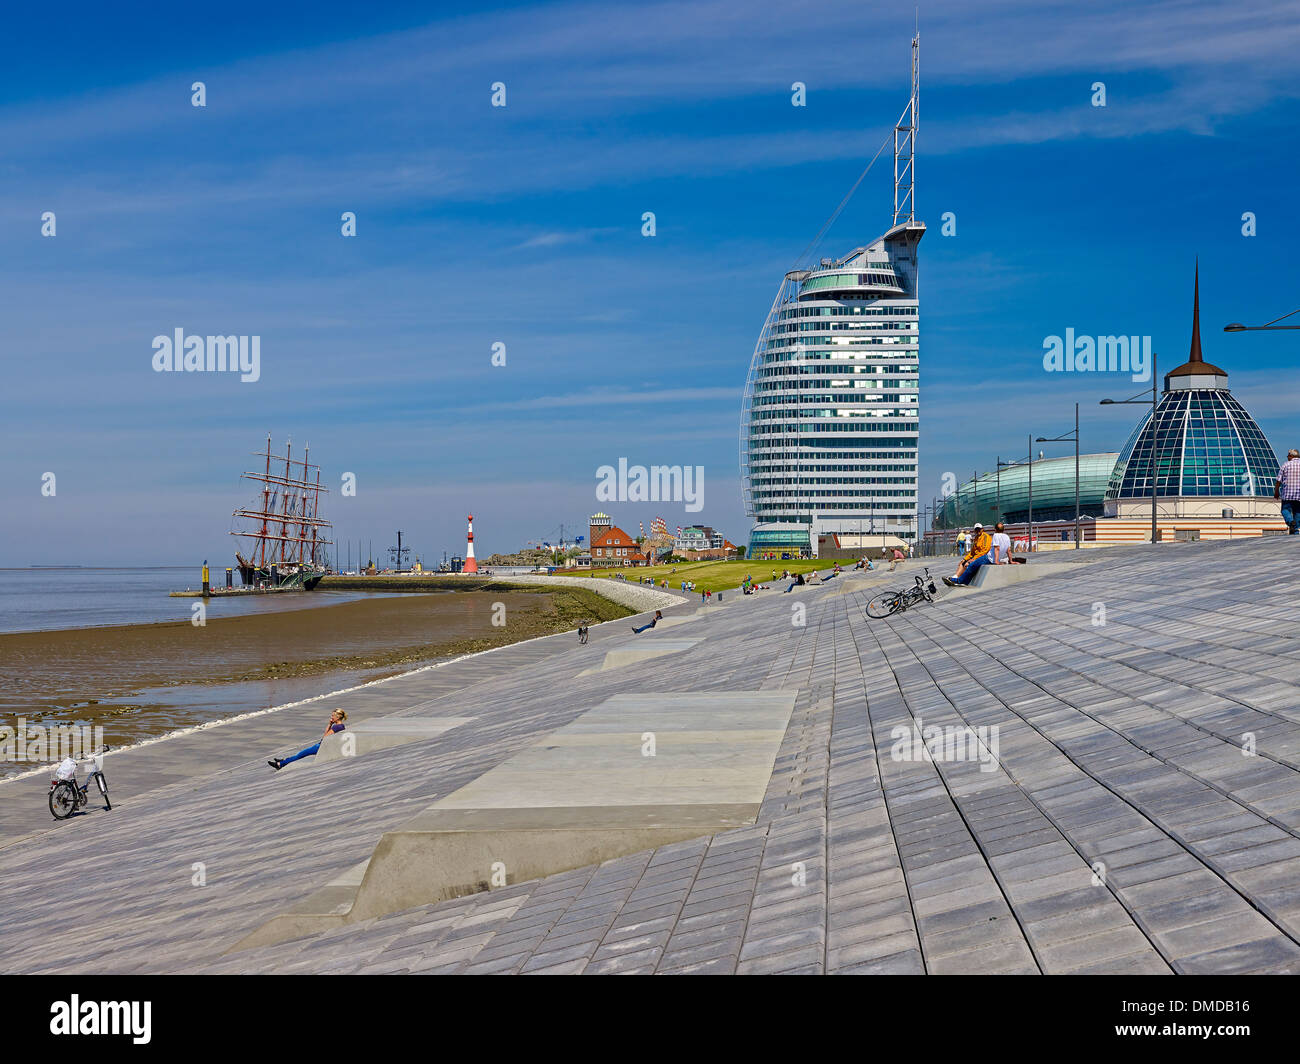 Dike with Atlantic Sail City Hotel and Mediterraneo, Bremerhaven, Bremen, Germany Stock Photo